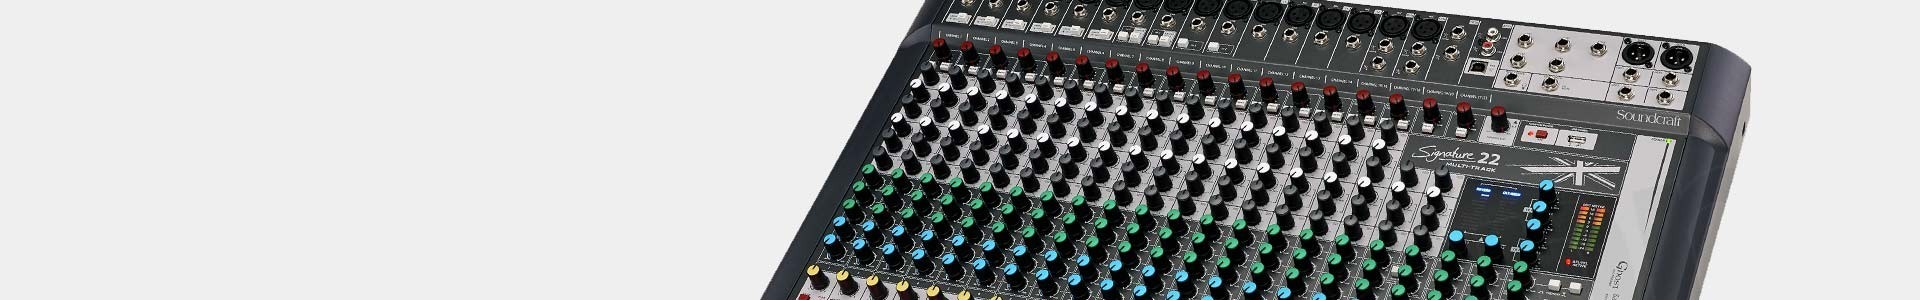 Professional analog and digital audio mixing consoles - Avacab